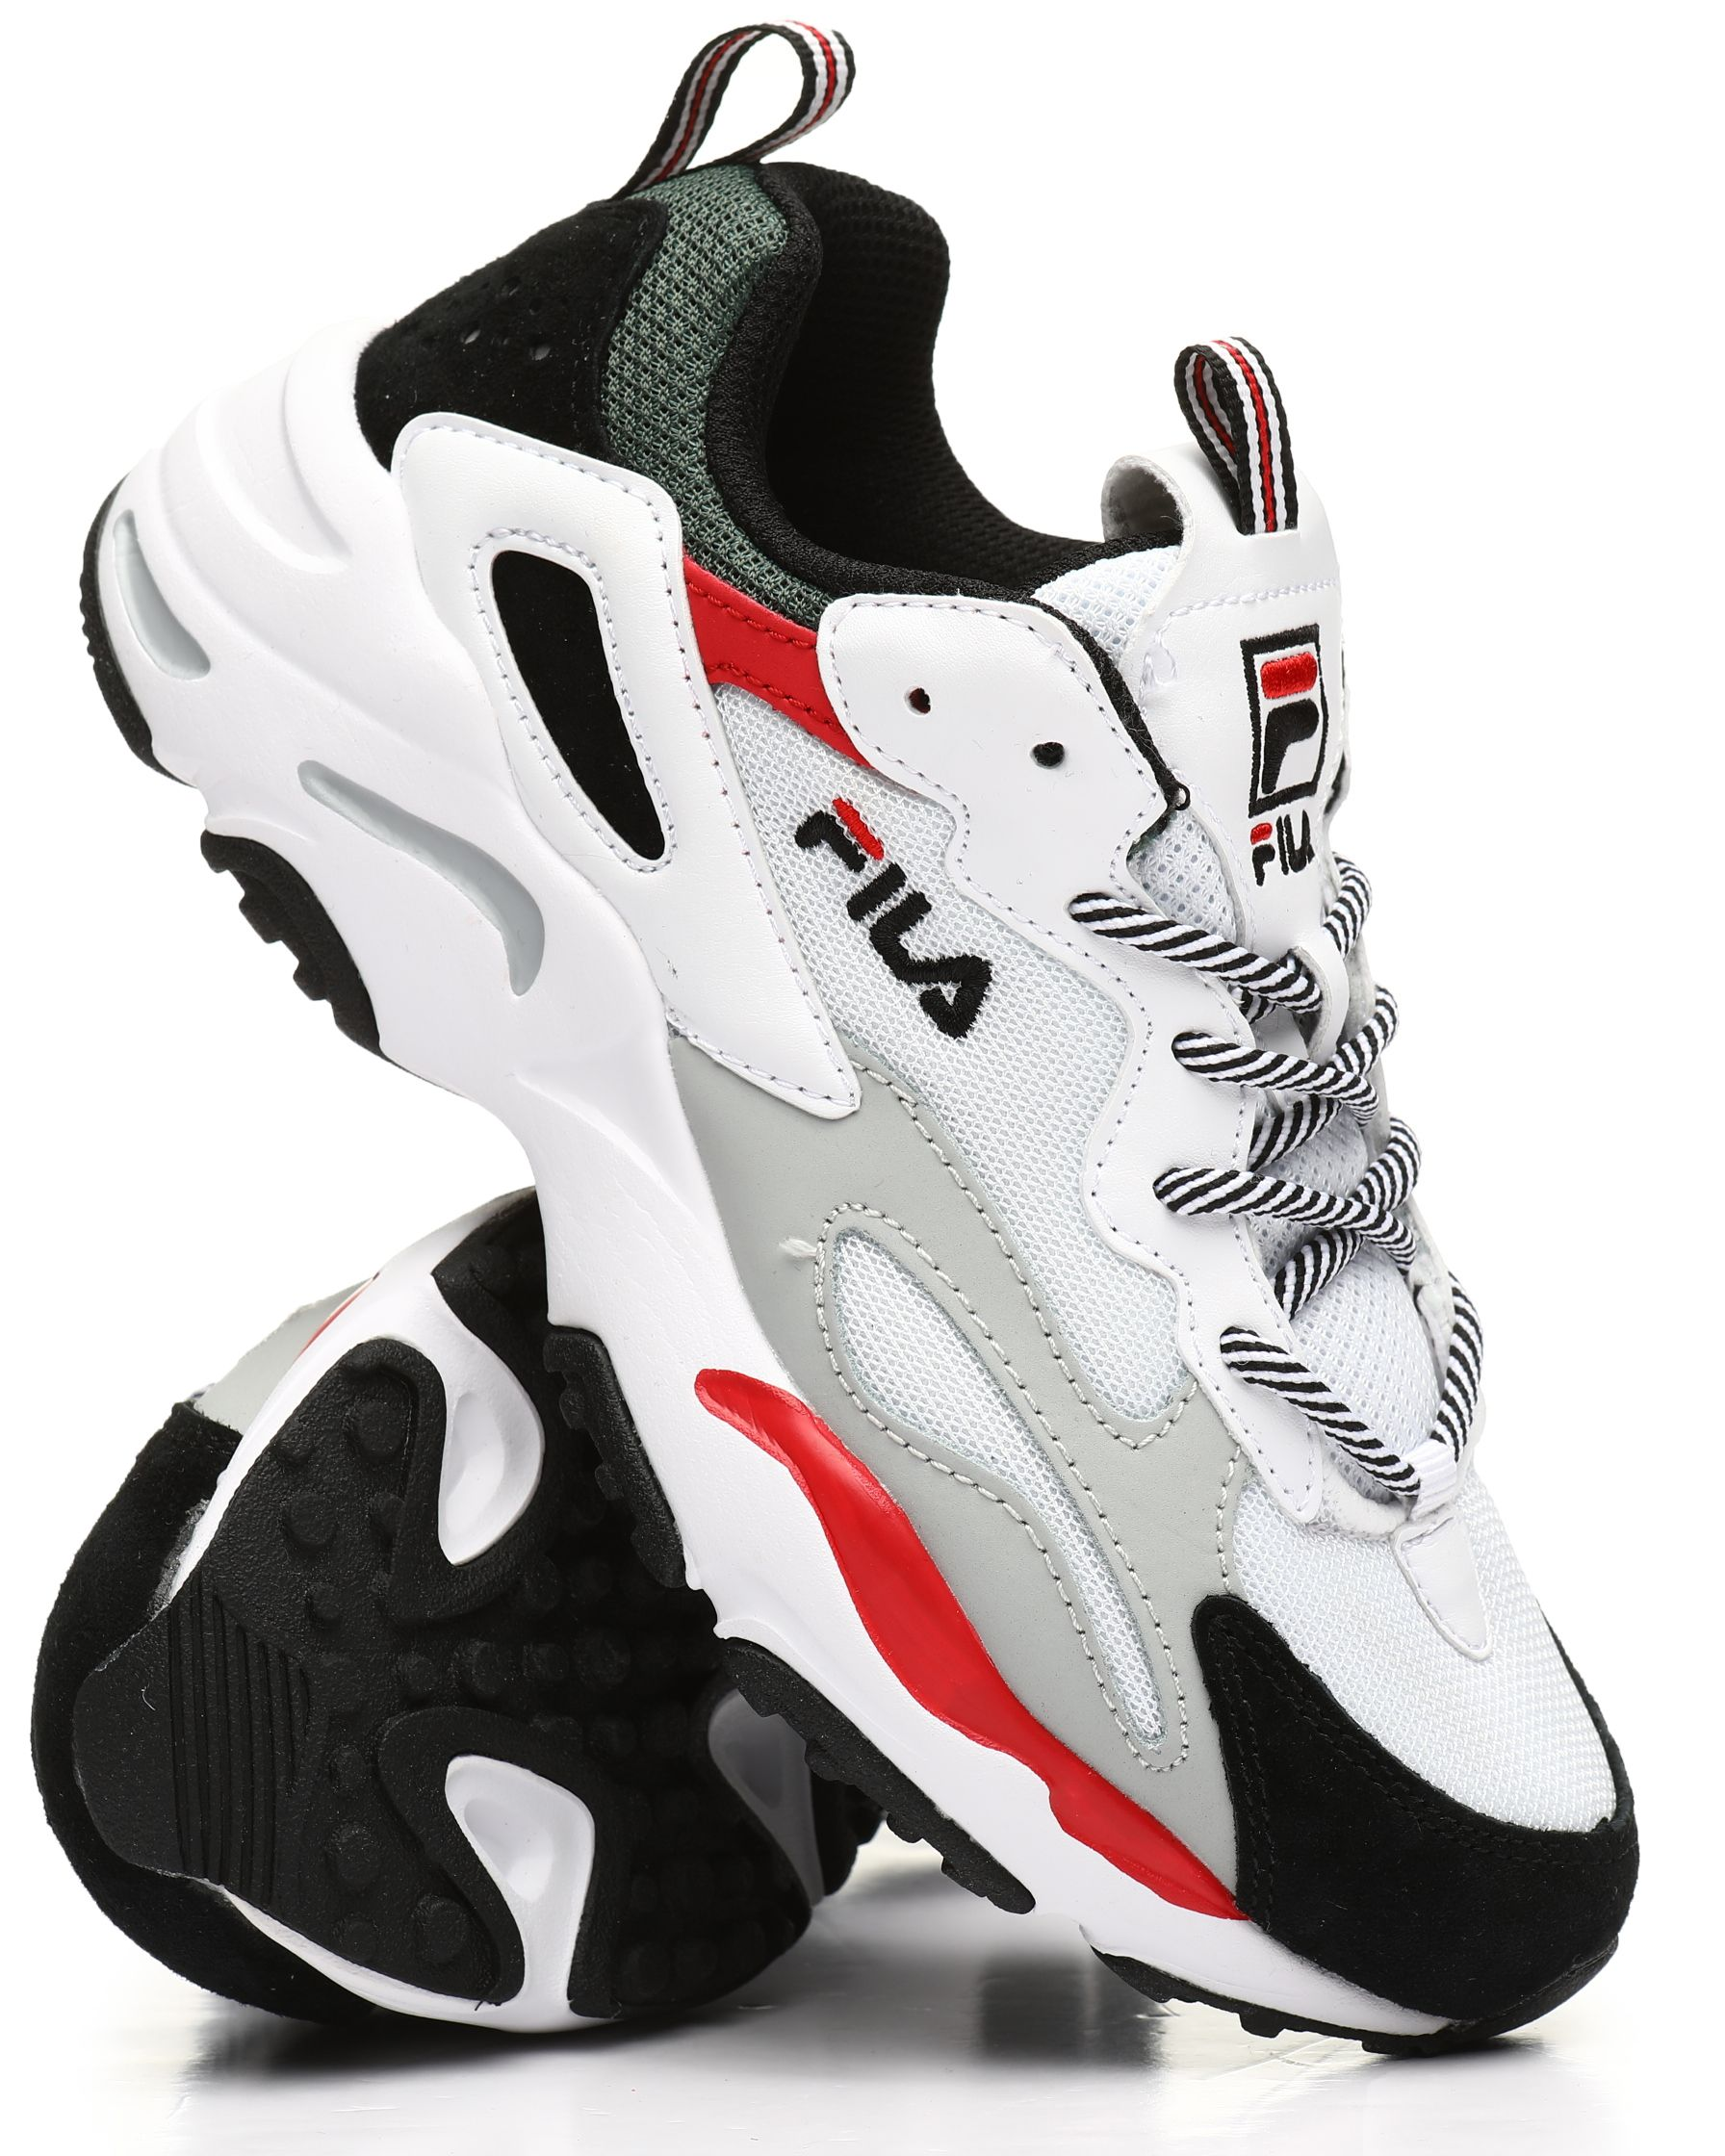 premium selection cb3bf bf26c Ray Tracer Sneakers from Fila at DrJays.com